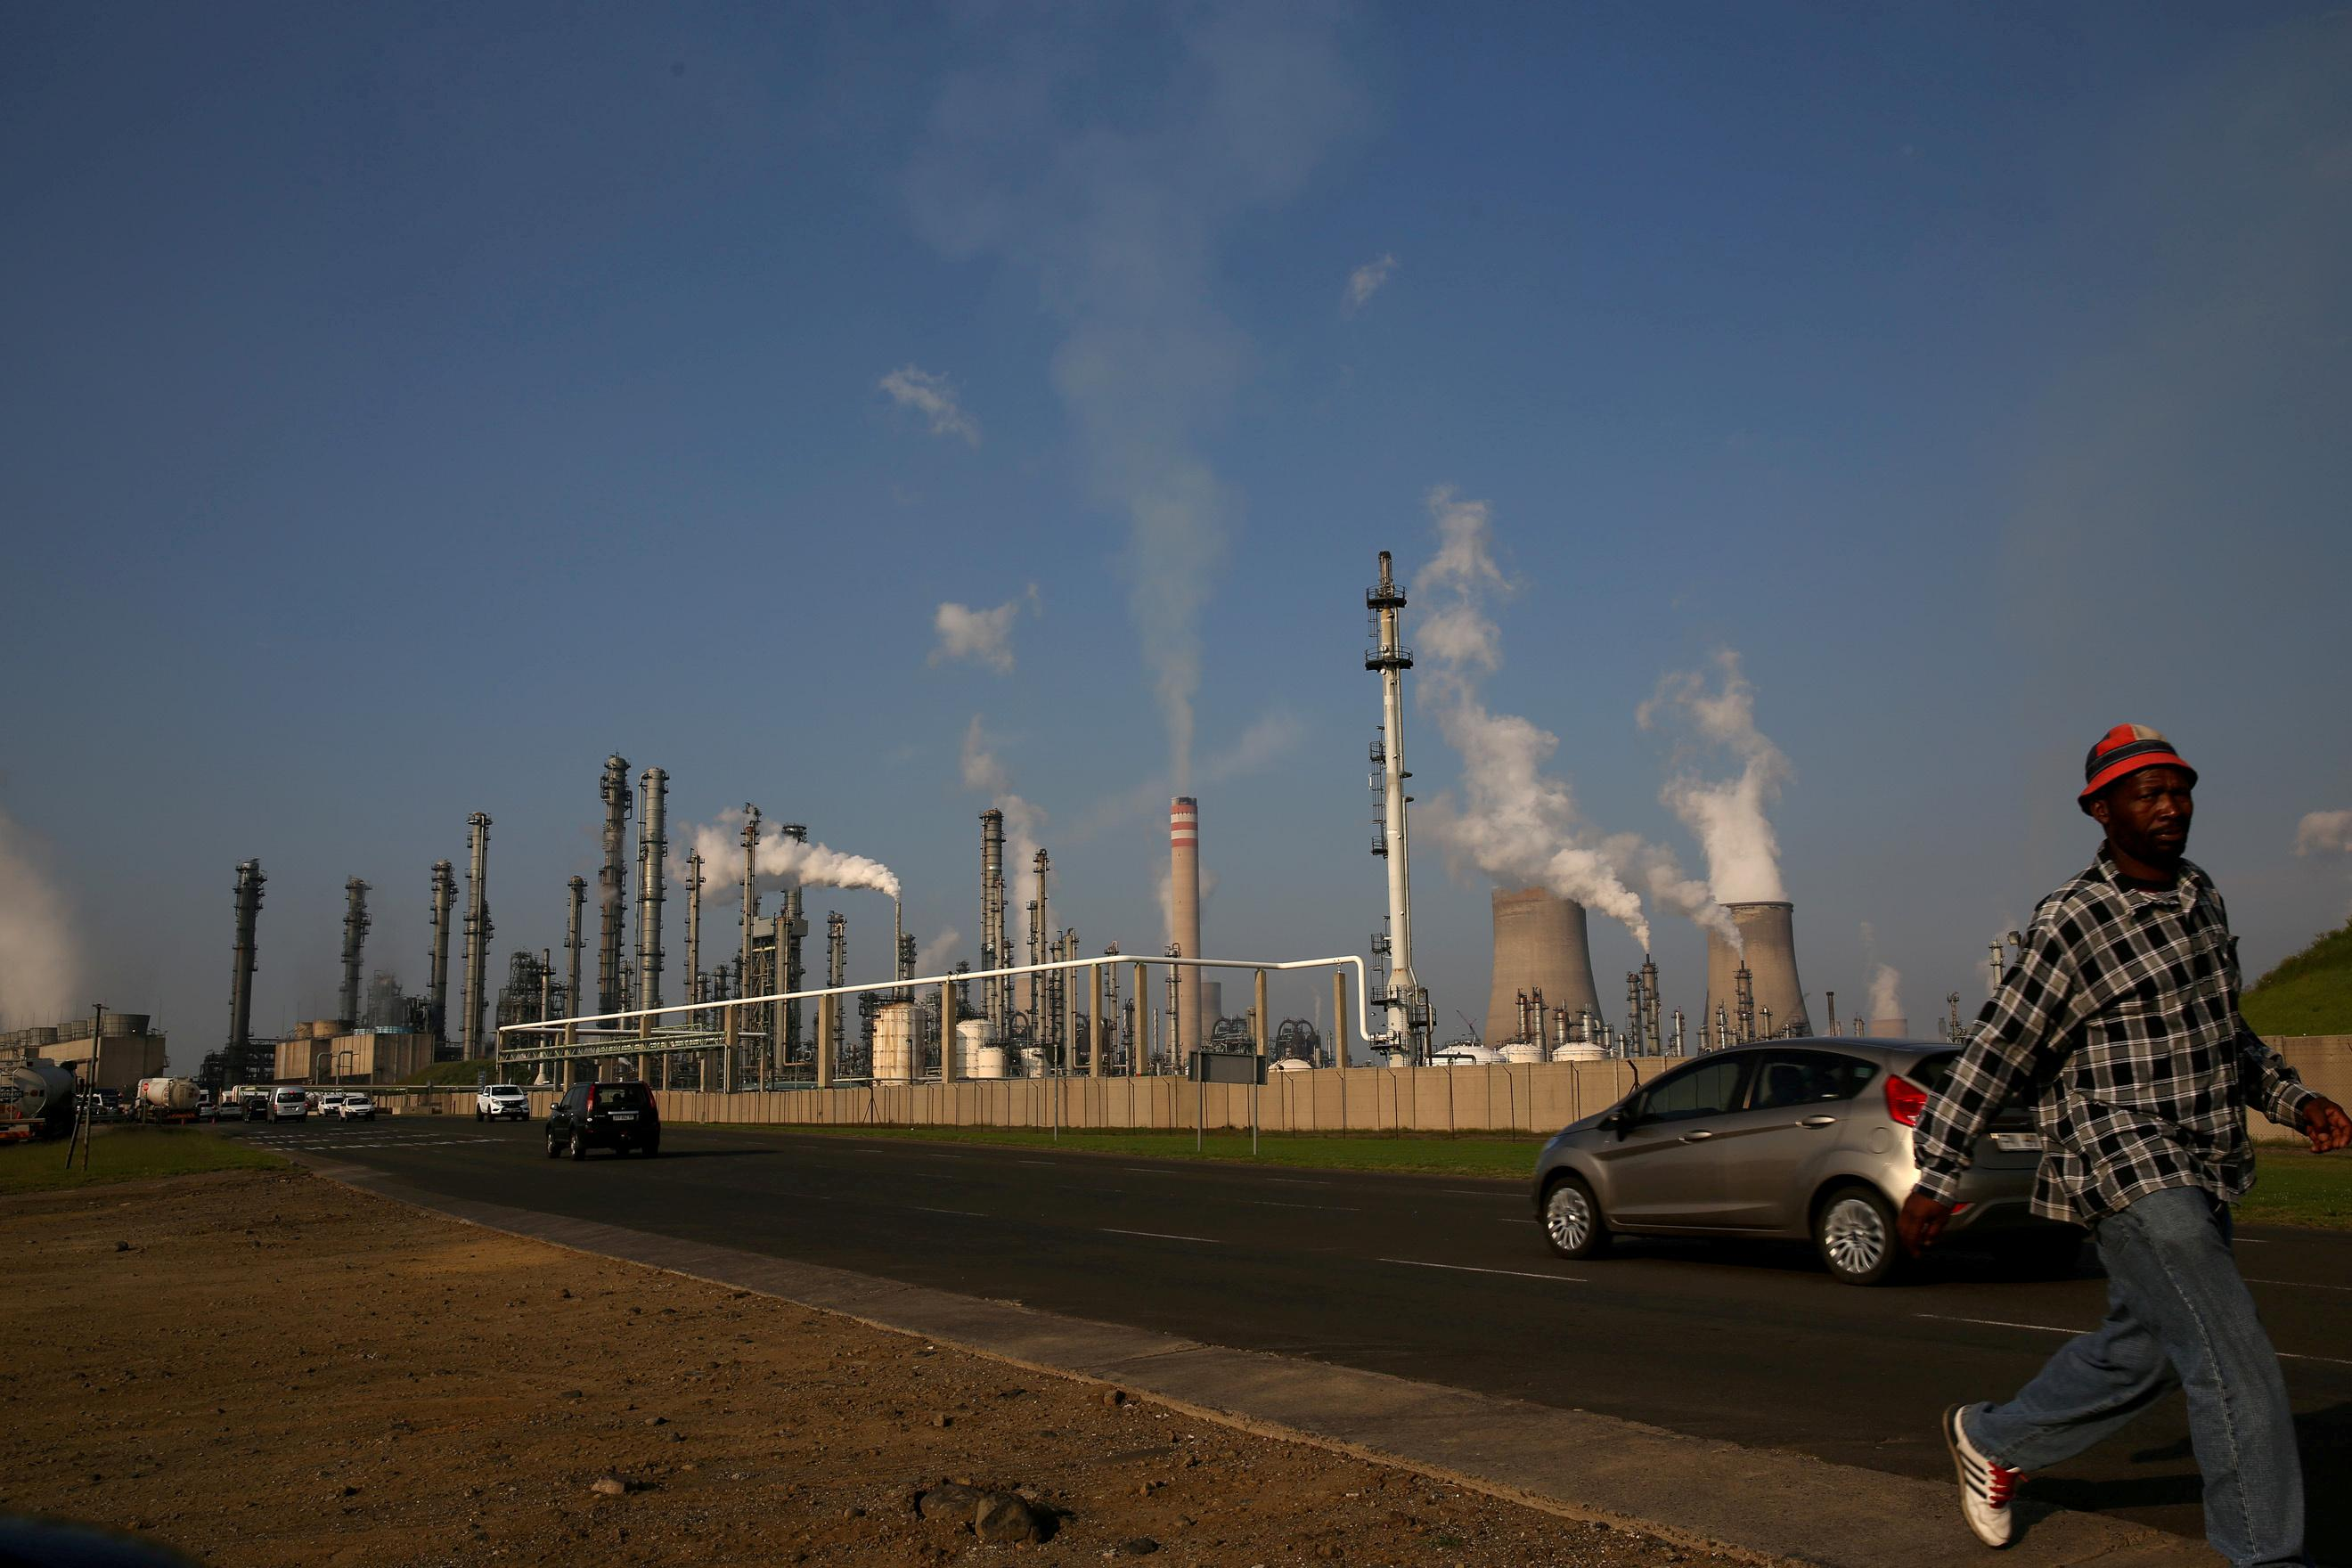 South African petrochemical company Sasol's synthetic fuel plant